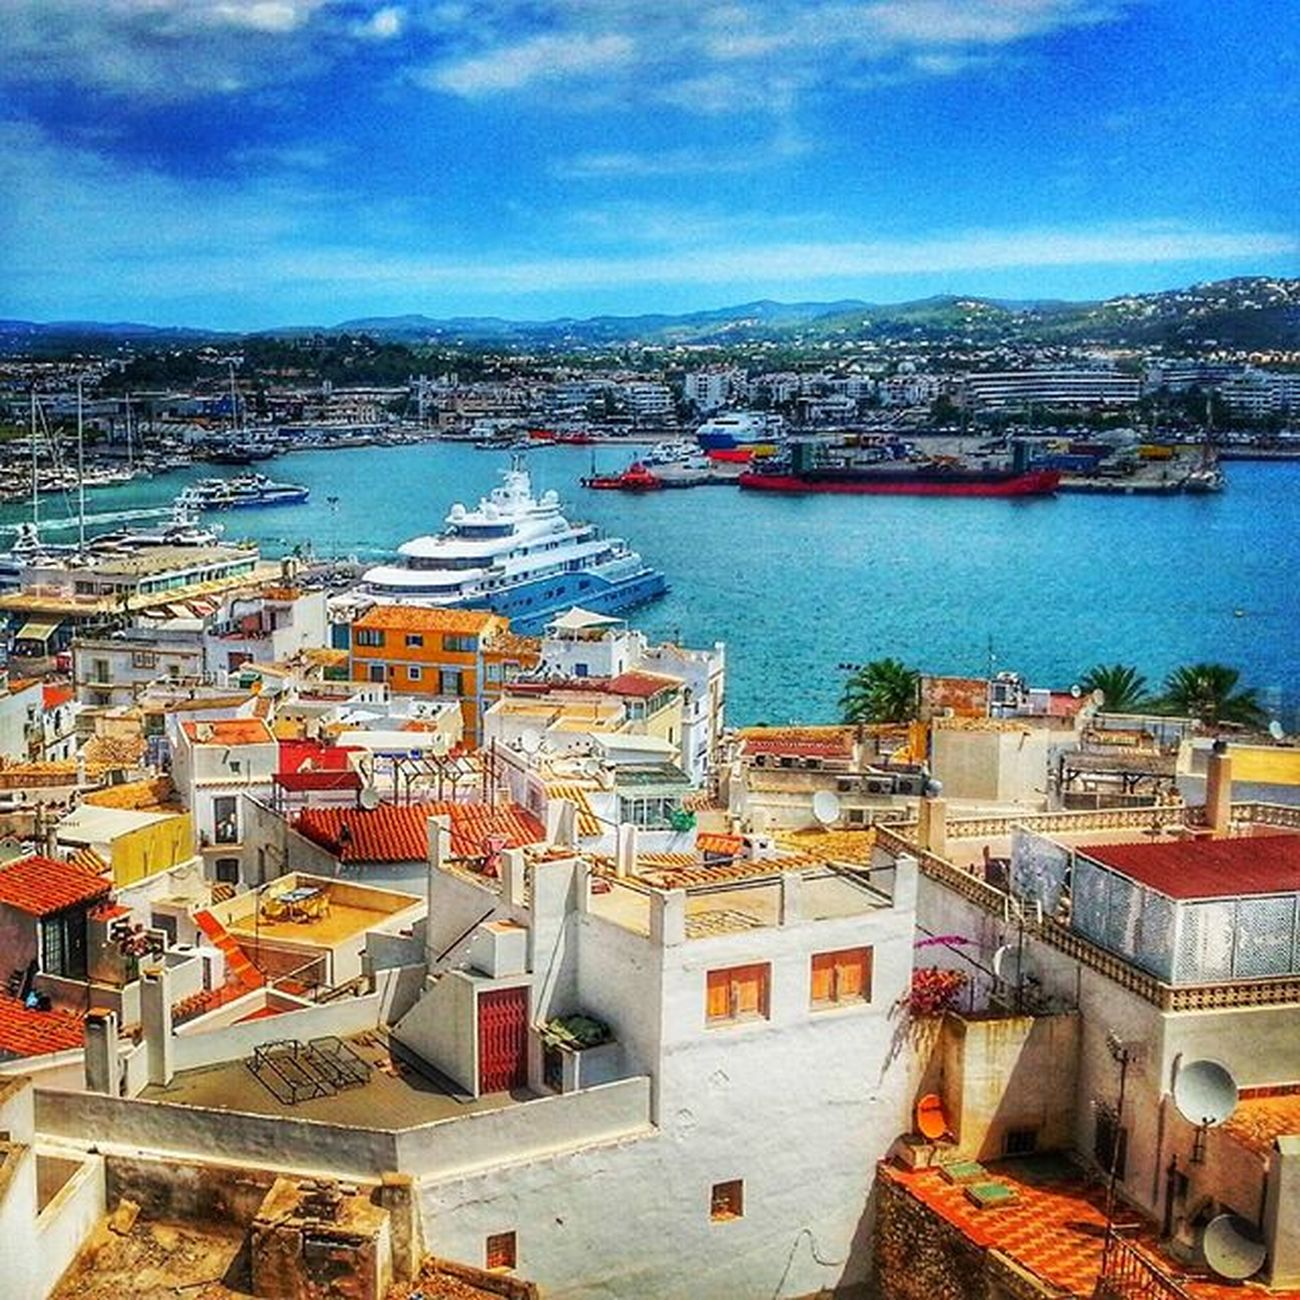 Ibiza Roadwarrior_hdr Ok_hdr Love_hdr_colour Hdr_lovers Estaes_espania Estaes_baleares Ig_great_pics Your_worldcaptures Monumentalspain Great_captures Hdr_captures Great_captures_HDR Travelmag_hdr Todoclick Hdr_pics